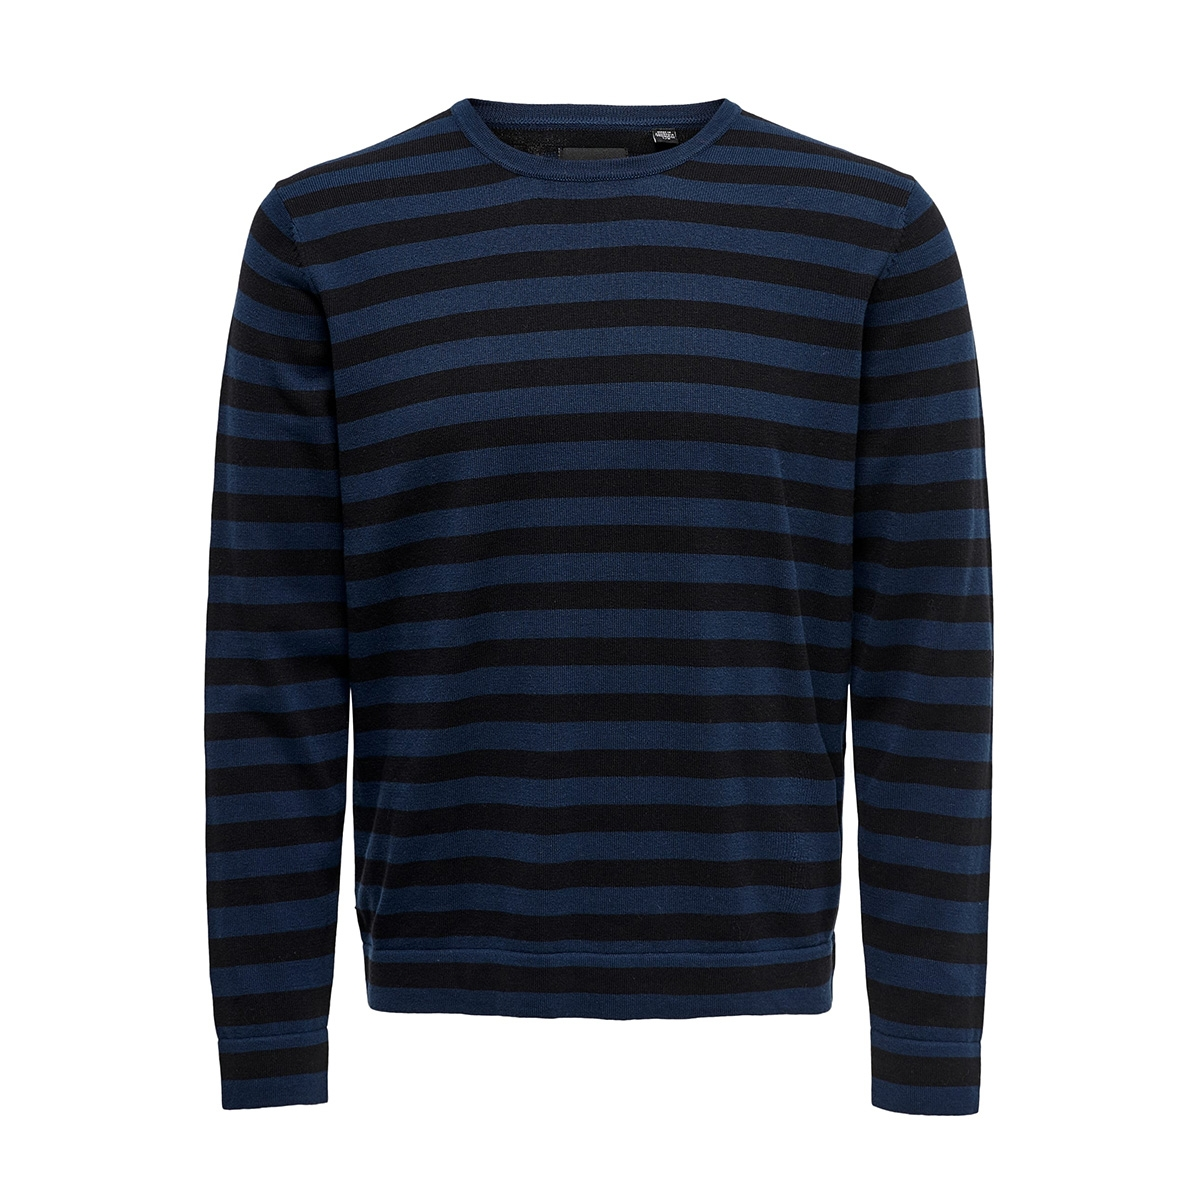 onsalex 12  crew neck knit 22014779 only & sons trui dress blues/black